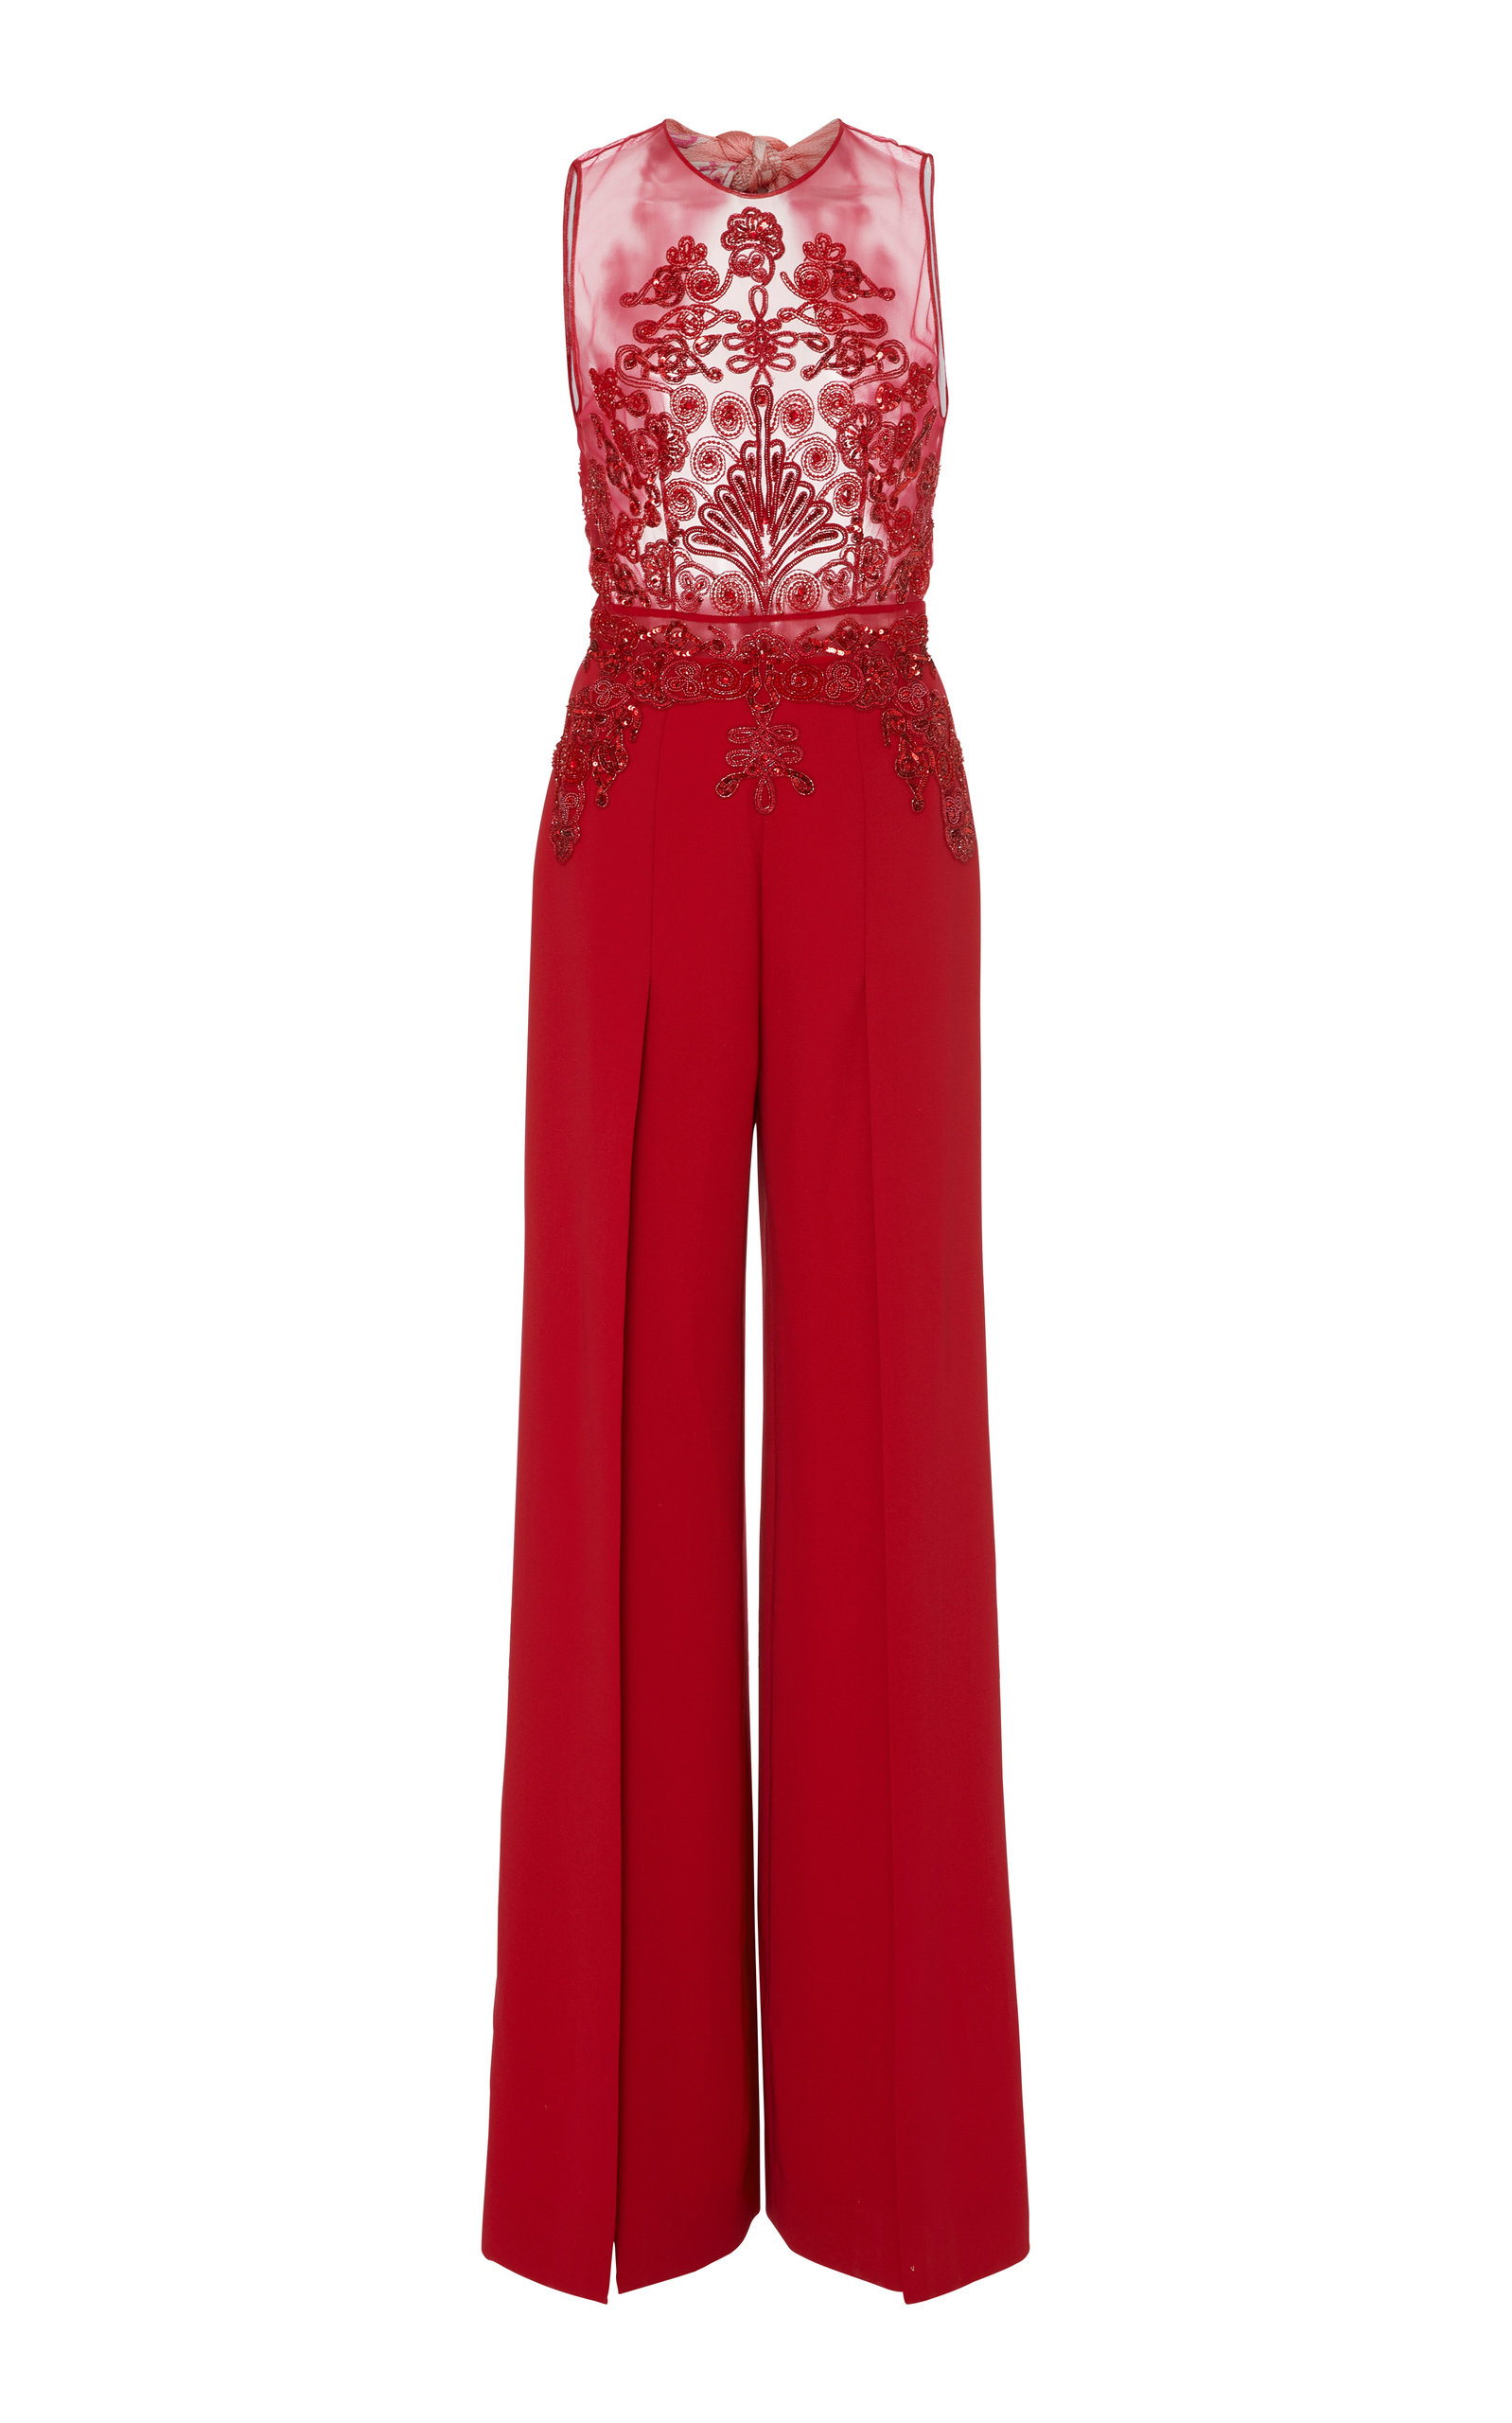 8a47d17fc48 Zuhair MuradEmbroidered Sheer Crepe Jumpsuit. CLOSE. Loading